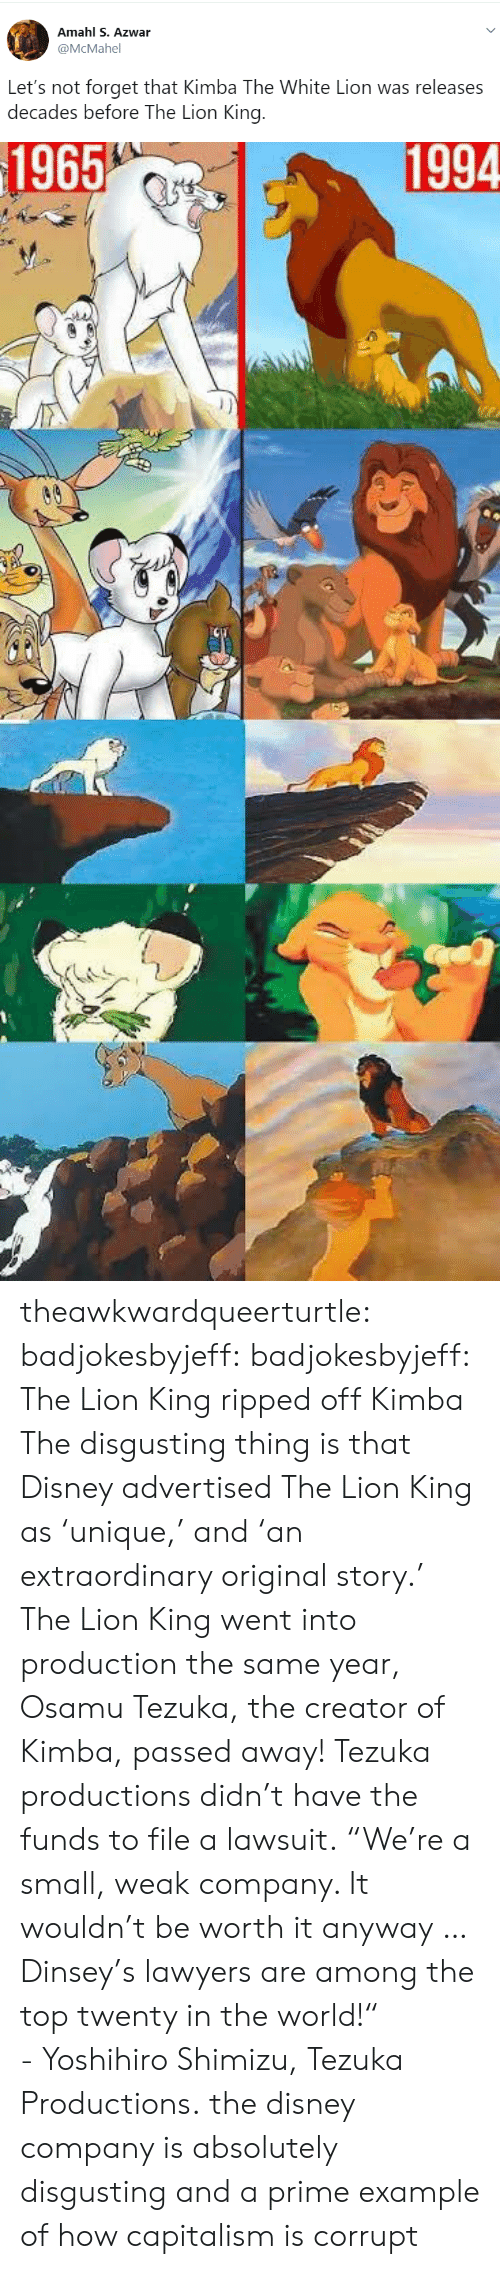 """Corrupt: Amahl S. Azwar  @McMahel  Let's not forget that Kimba The White Lion was releases  decades before The Lion King   1965  1994 theawkwardqueerturtle: badjokesbyjeff:  badjokesbyjeff: The Lion King ripped off Kimba The disgusting thing is that Disney advertised The Lion King as'unique,' and 'an extraordinary original story.' The Lion King went into production the same year,  Osamu Tezuka, the creator of Kimba, passed away! Tezuka productions didn't have the funds to file a lawsuit. """"We're a small, weak company. It wouldn't be worth it anyway … Dinsey's lawyers are among the top twenty in the world!"""" -Yoshihiro Shimizu, Tezuka Productions.  the disney company is absolutely disgusting and a prime example of how capitalism is corrupt"""